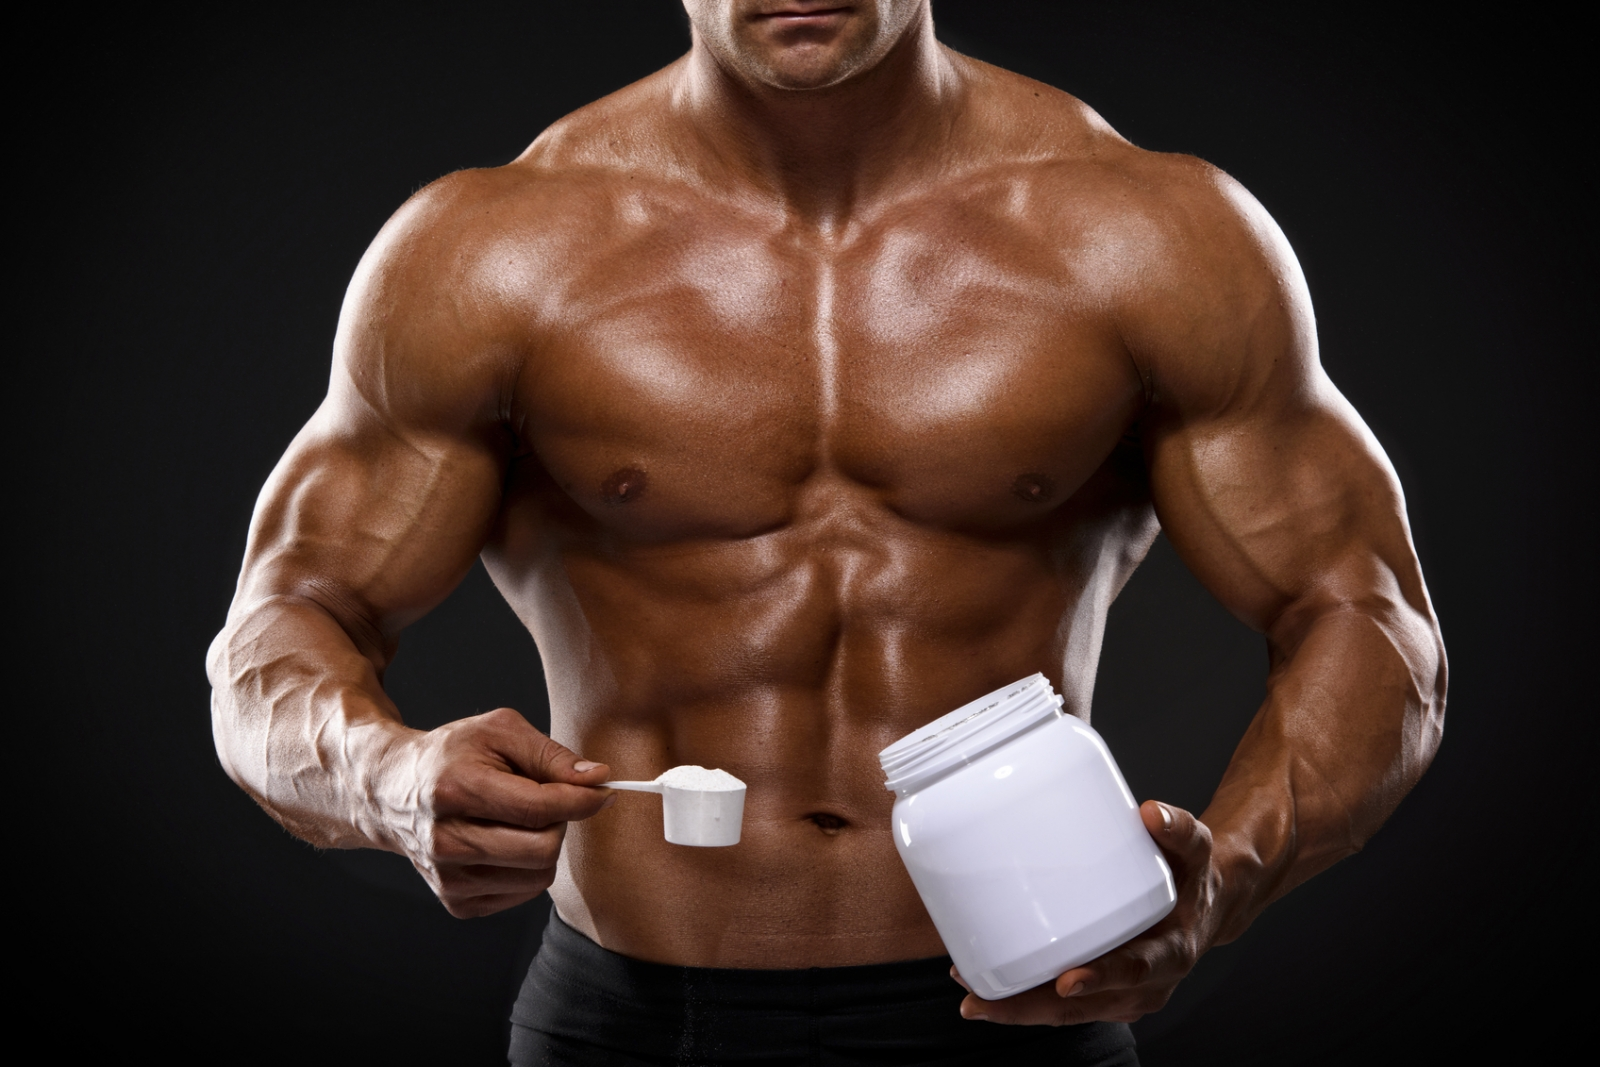 Best protein drink for muscle growth